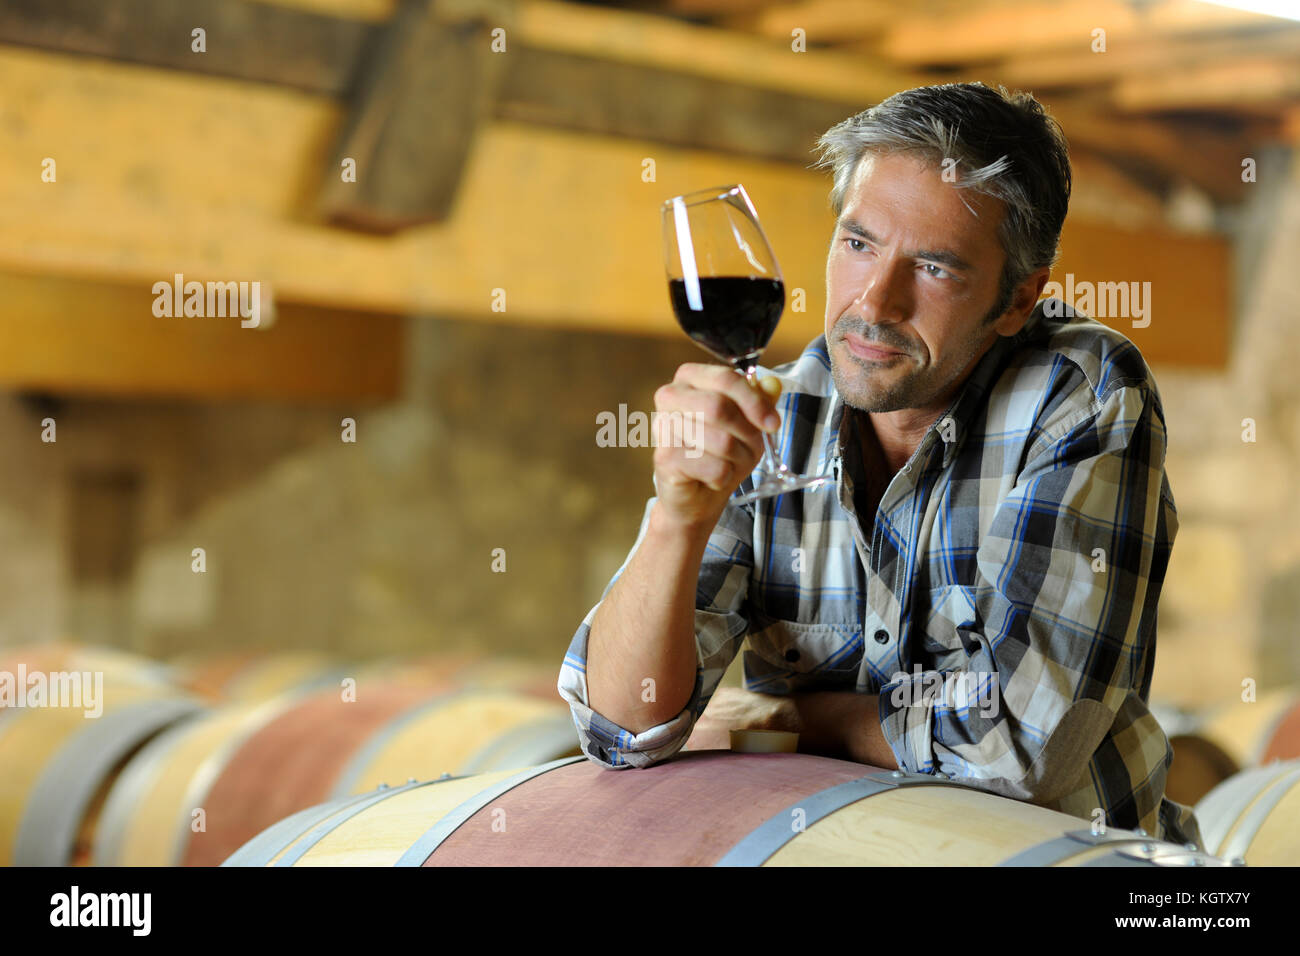 Winemaker tasting red wine in winery - Stock Image